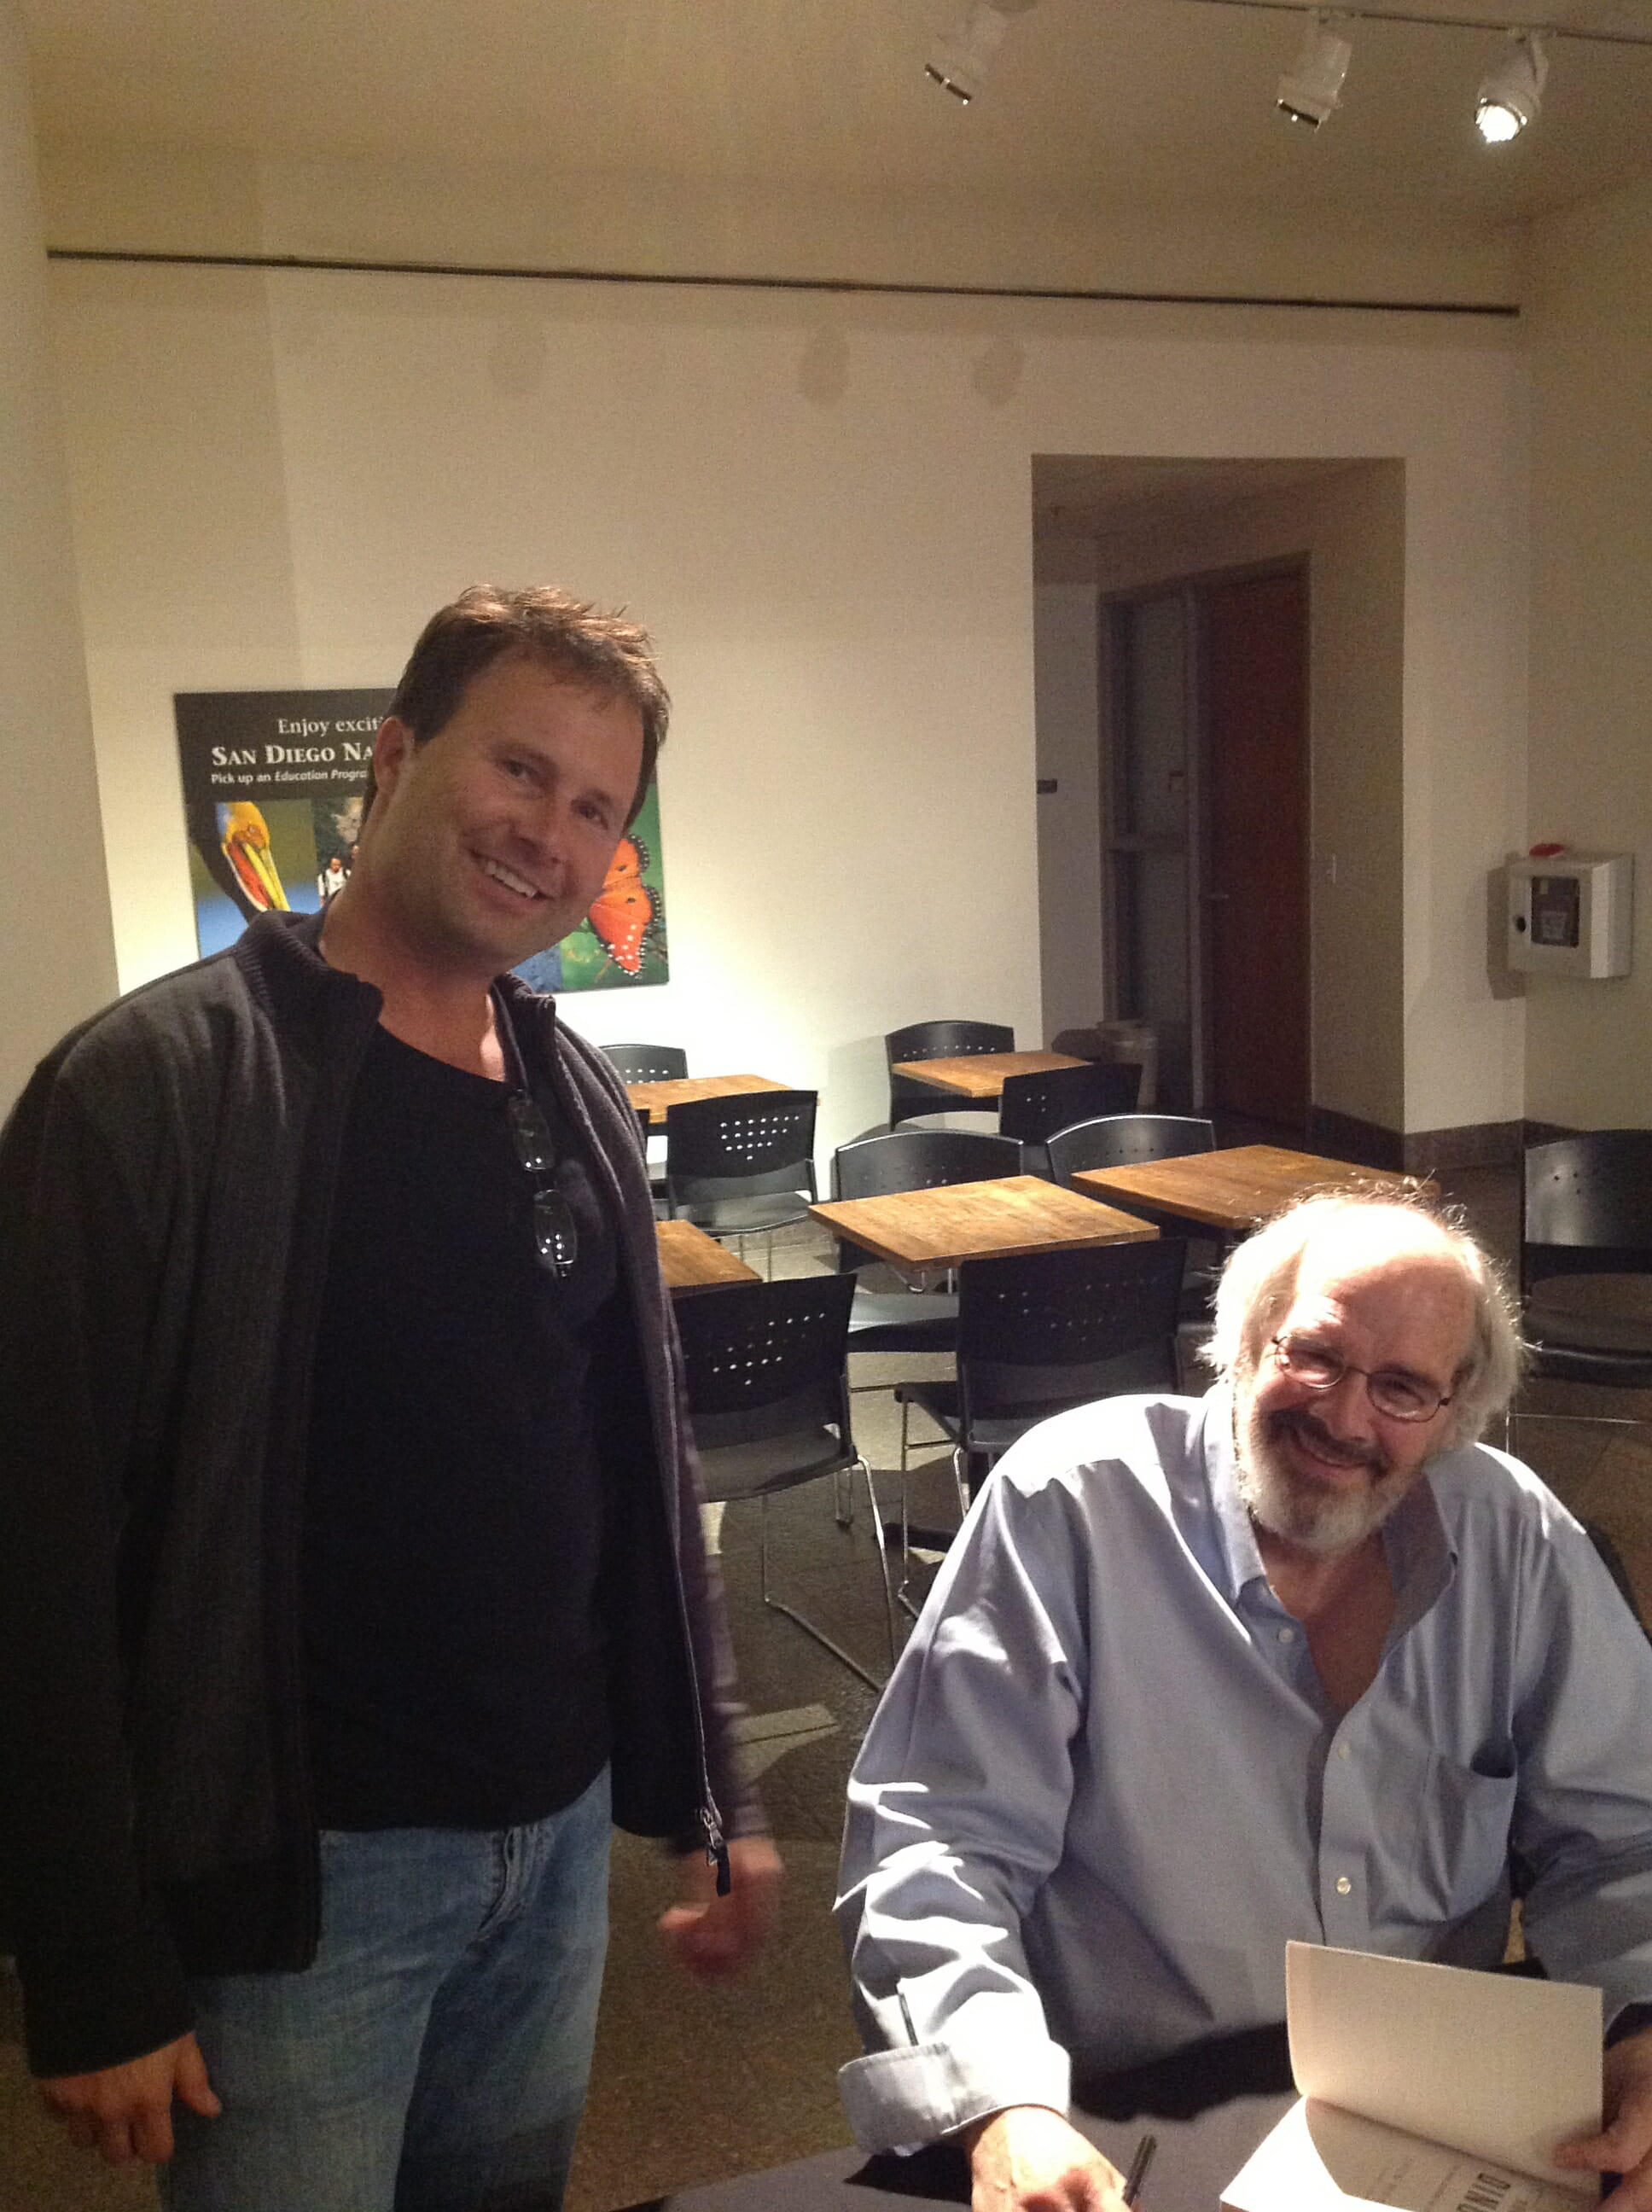 Michael Covel and Jack Horner